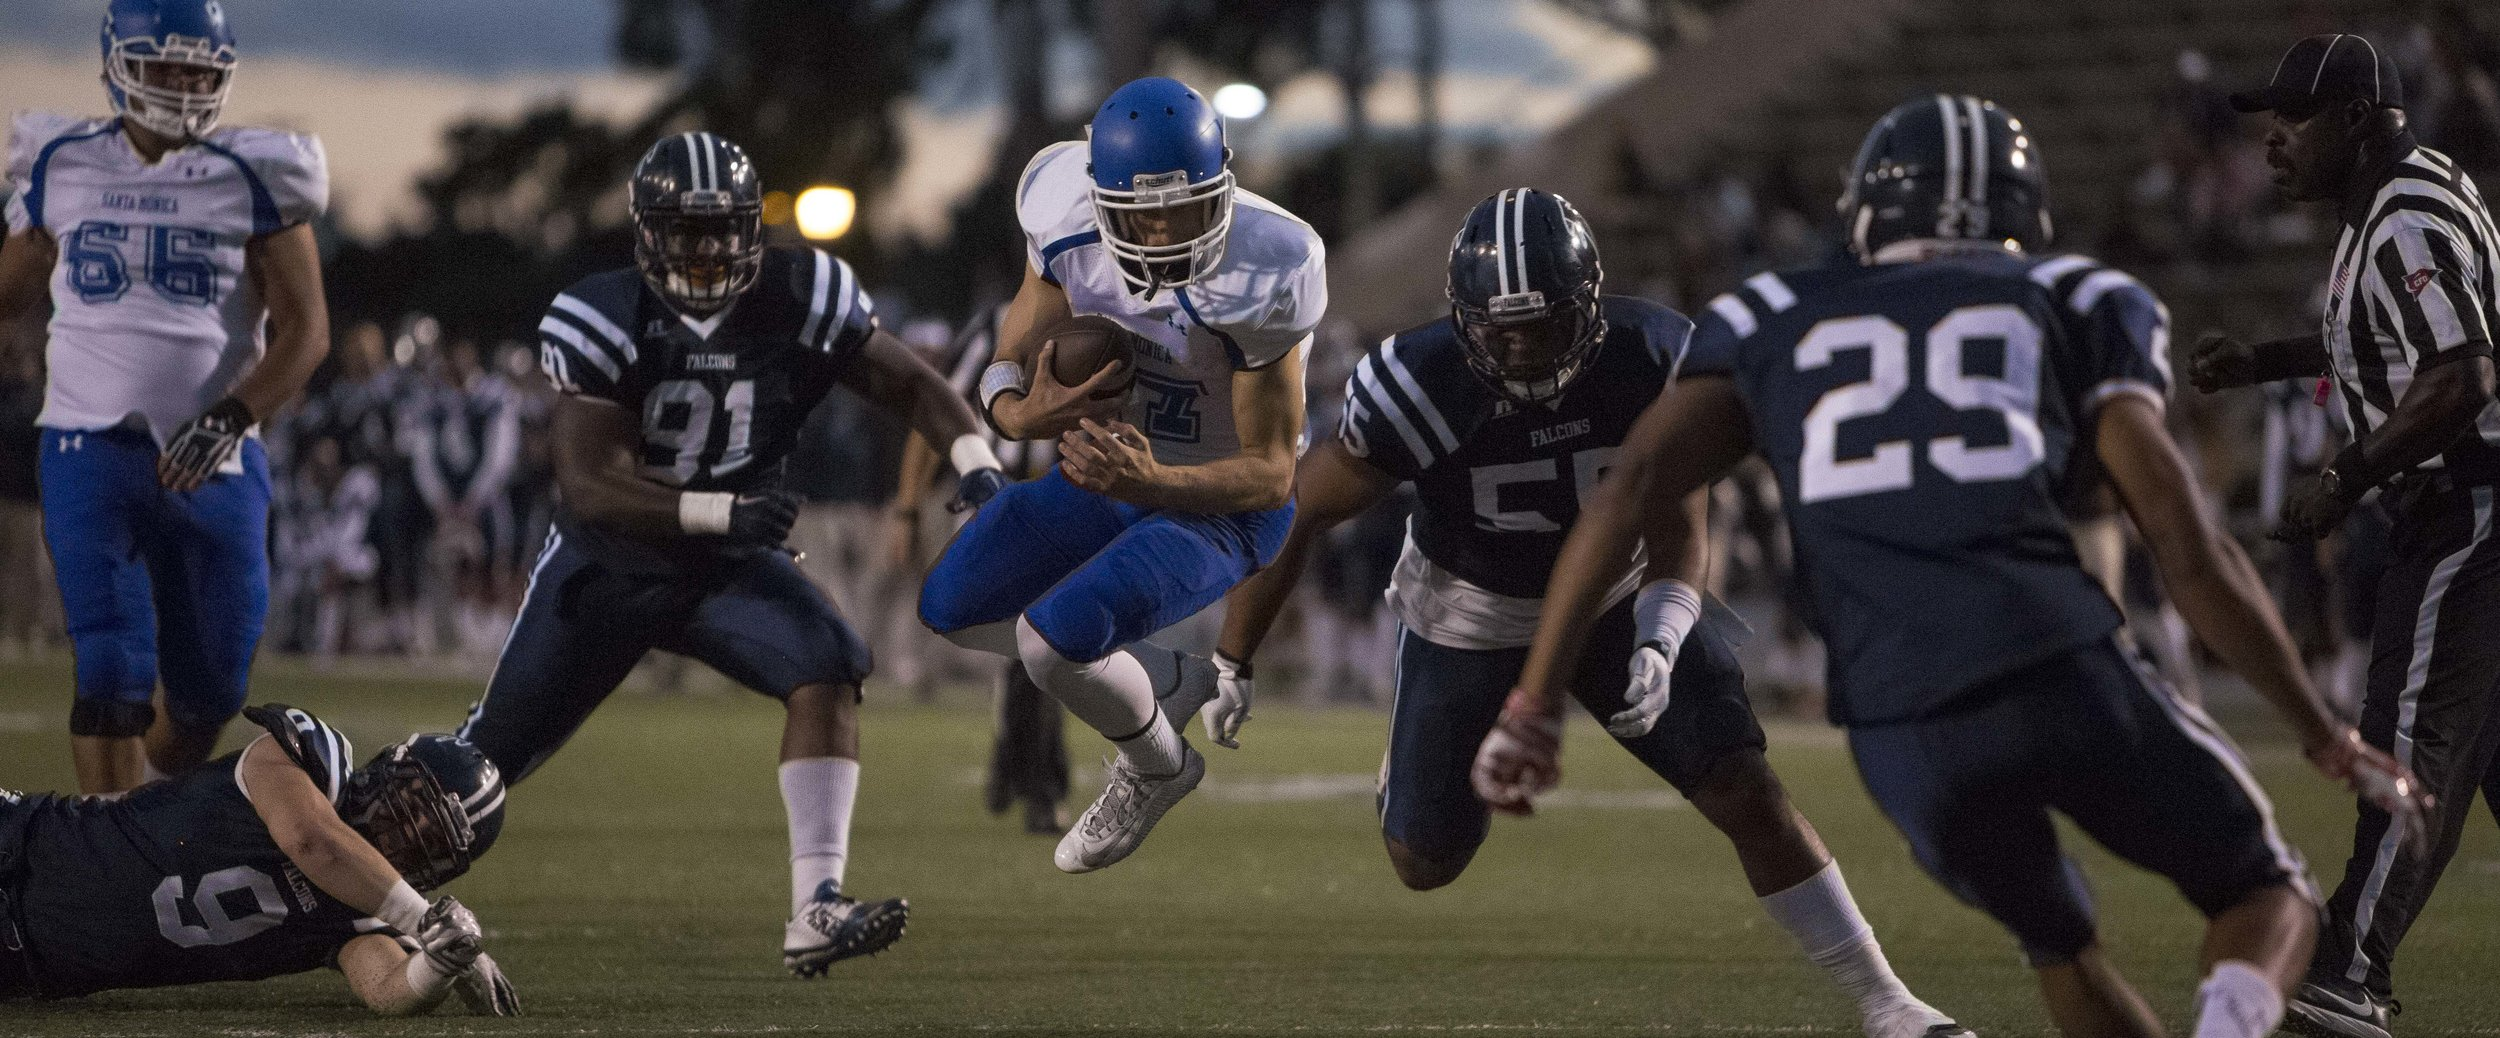 The Santa Monica College Corsair men's football team freshman quarterback #17 Weston Massett (white,center) makes a huge dive for a first down against The Cerritos College Falcona away in Cerritos , Calif. on October 17th, 2016 . The Corsairs would loose35-13. (Photo By: Daniel Bowyer/Corsair Staff)